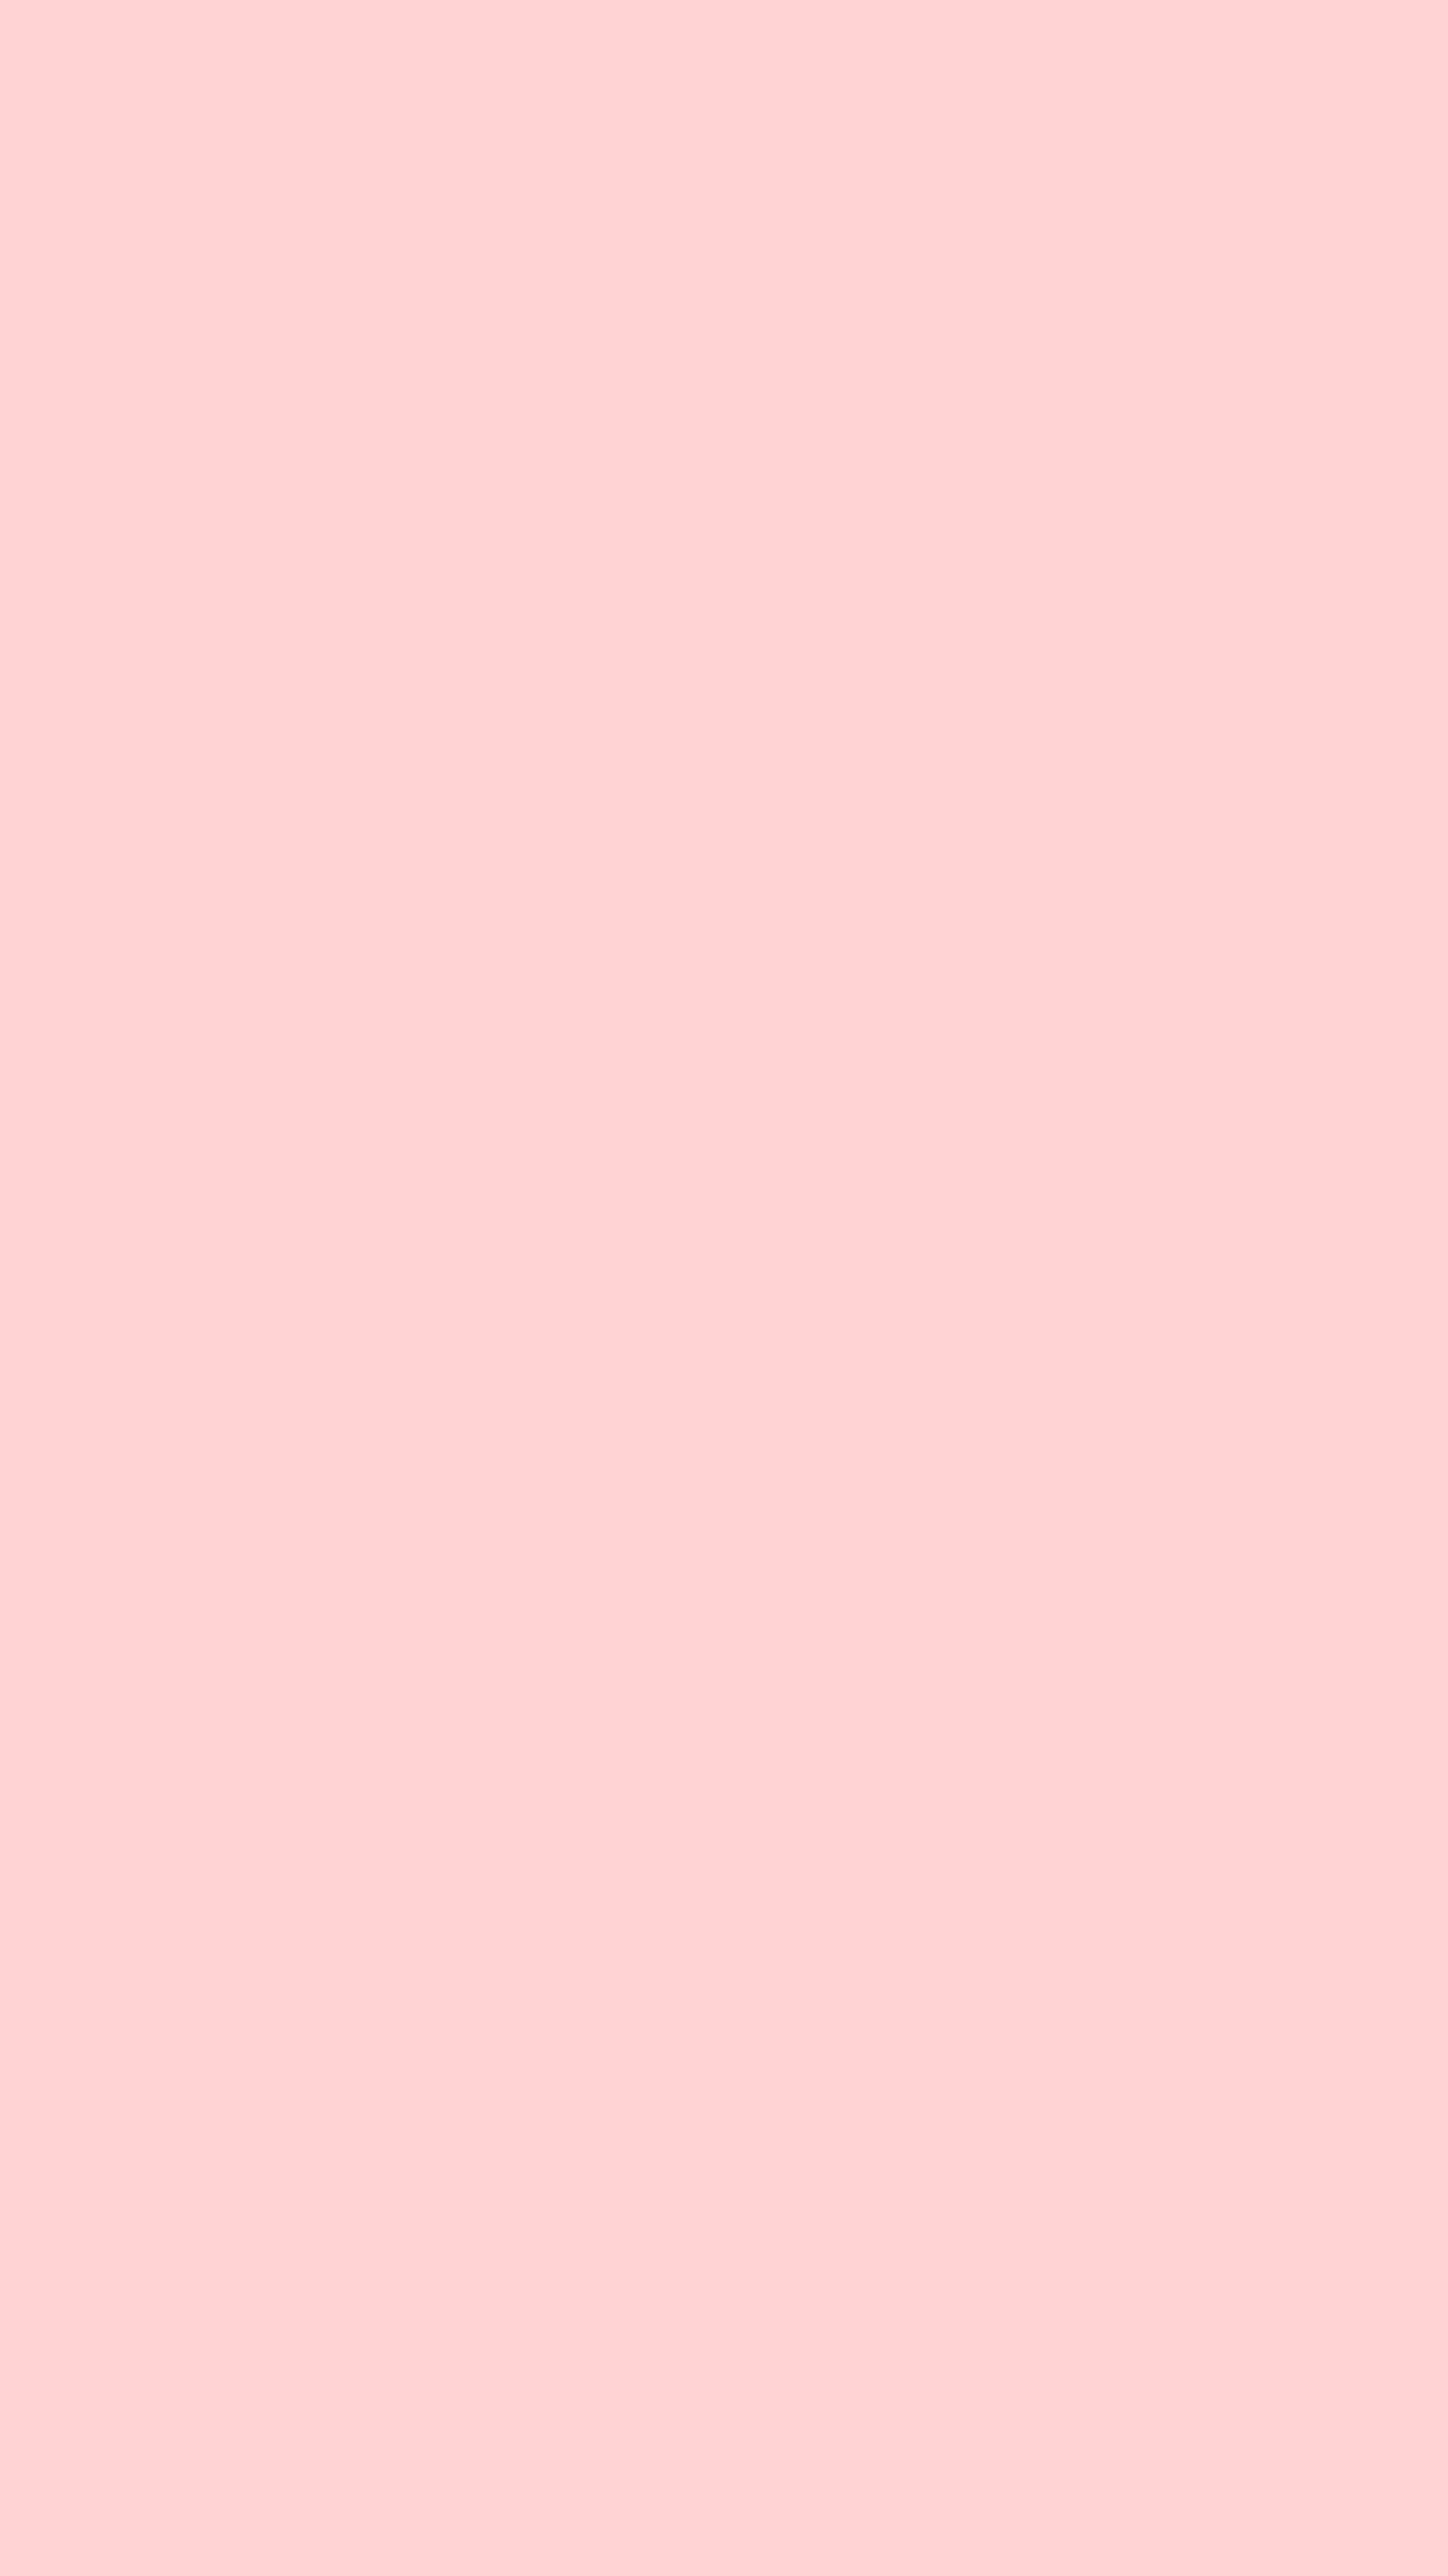 Pin By Ava On Pastel Pink Wallpaper Iphone Pastel Pink